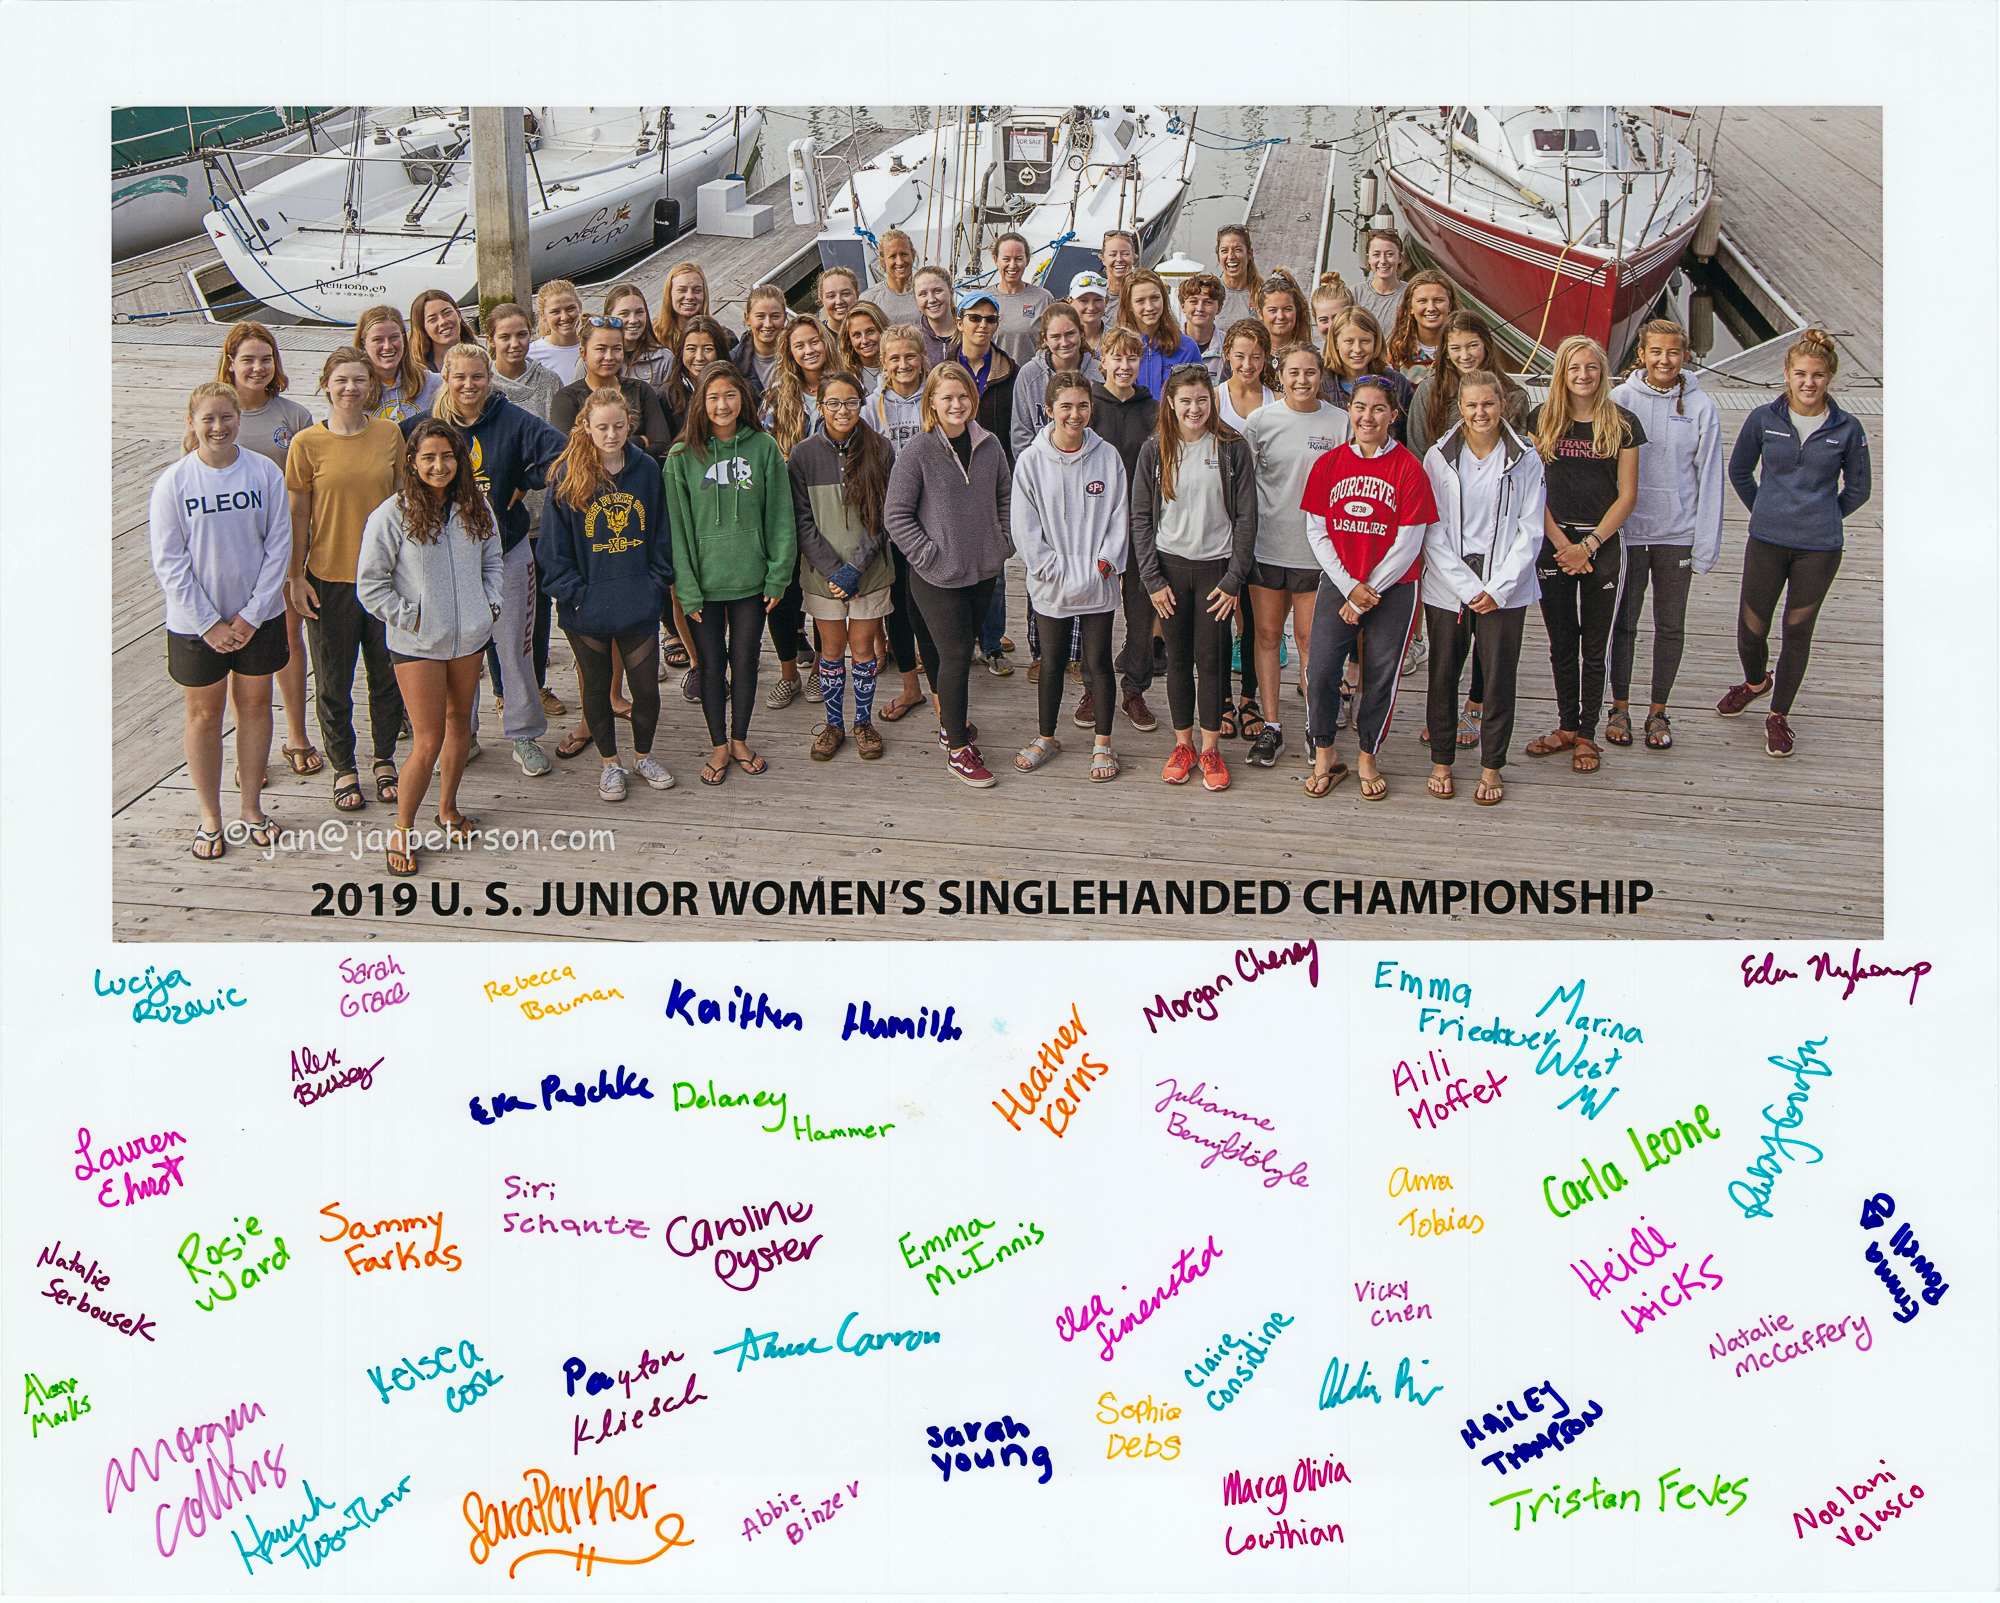 2019 U.S. JUNIOR WOMEN'S SINGLEHANDED CHAMPIONSHIP at the Richmond Yacht Club, July 2019 -- Group photo and signed poster